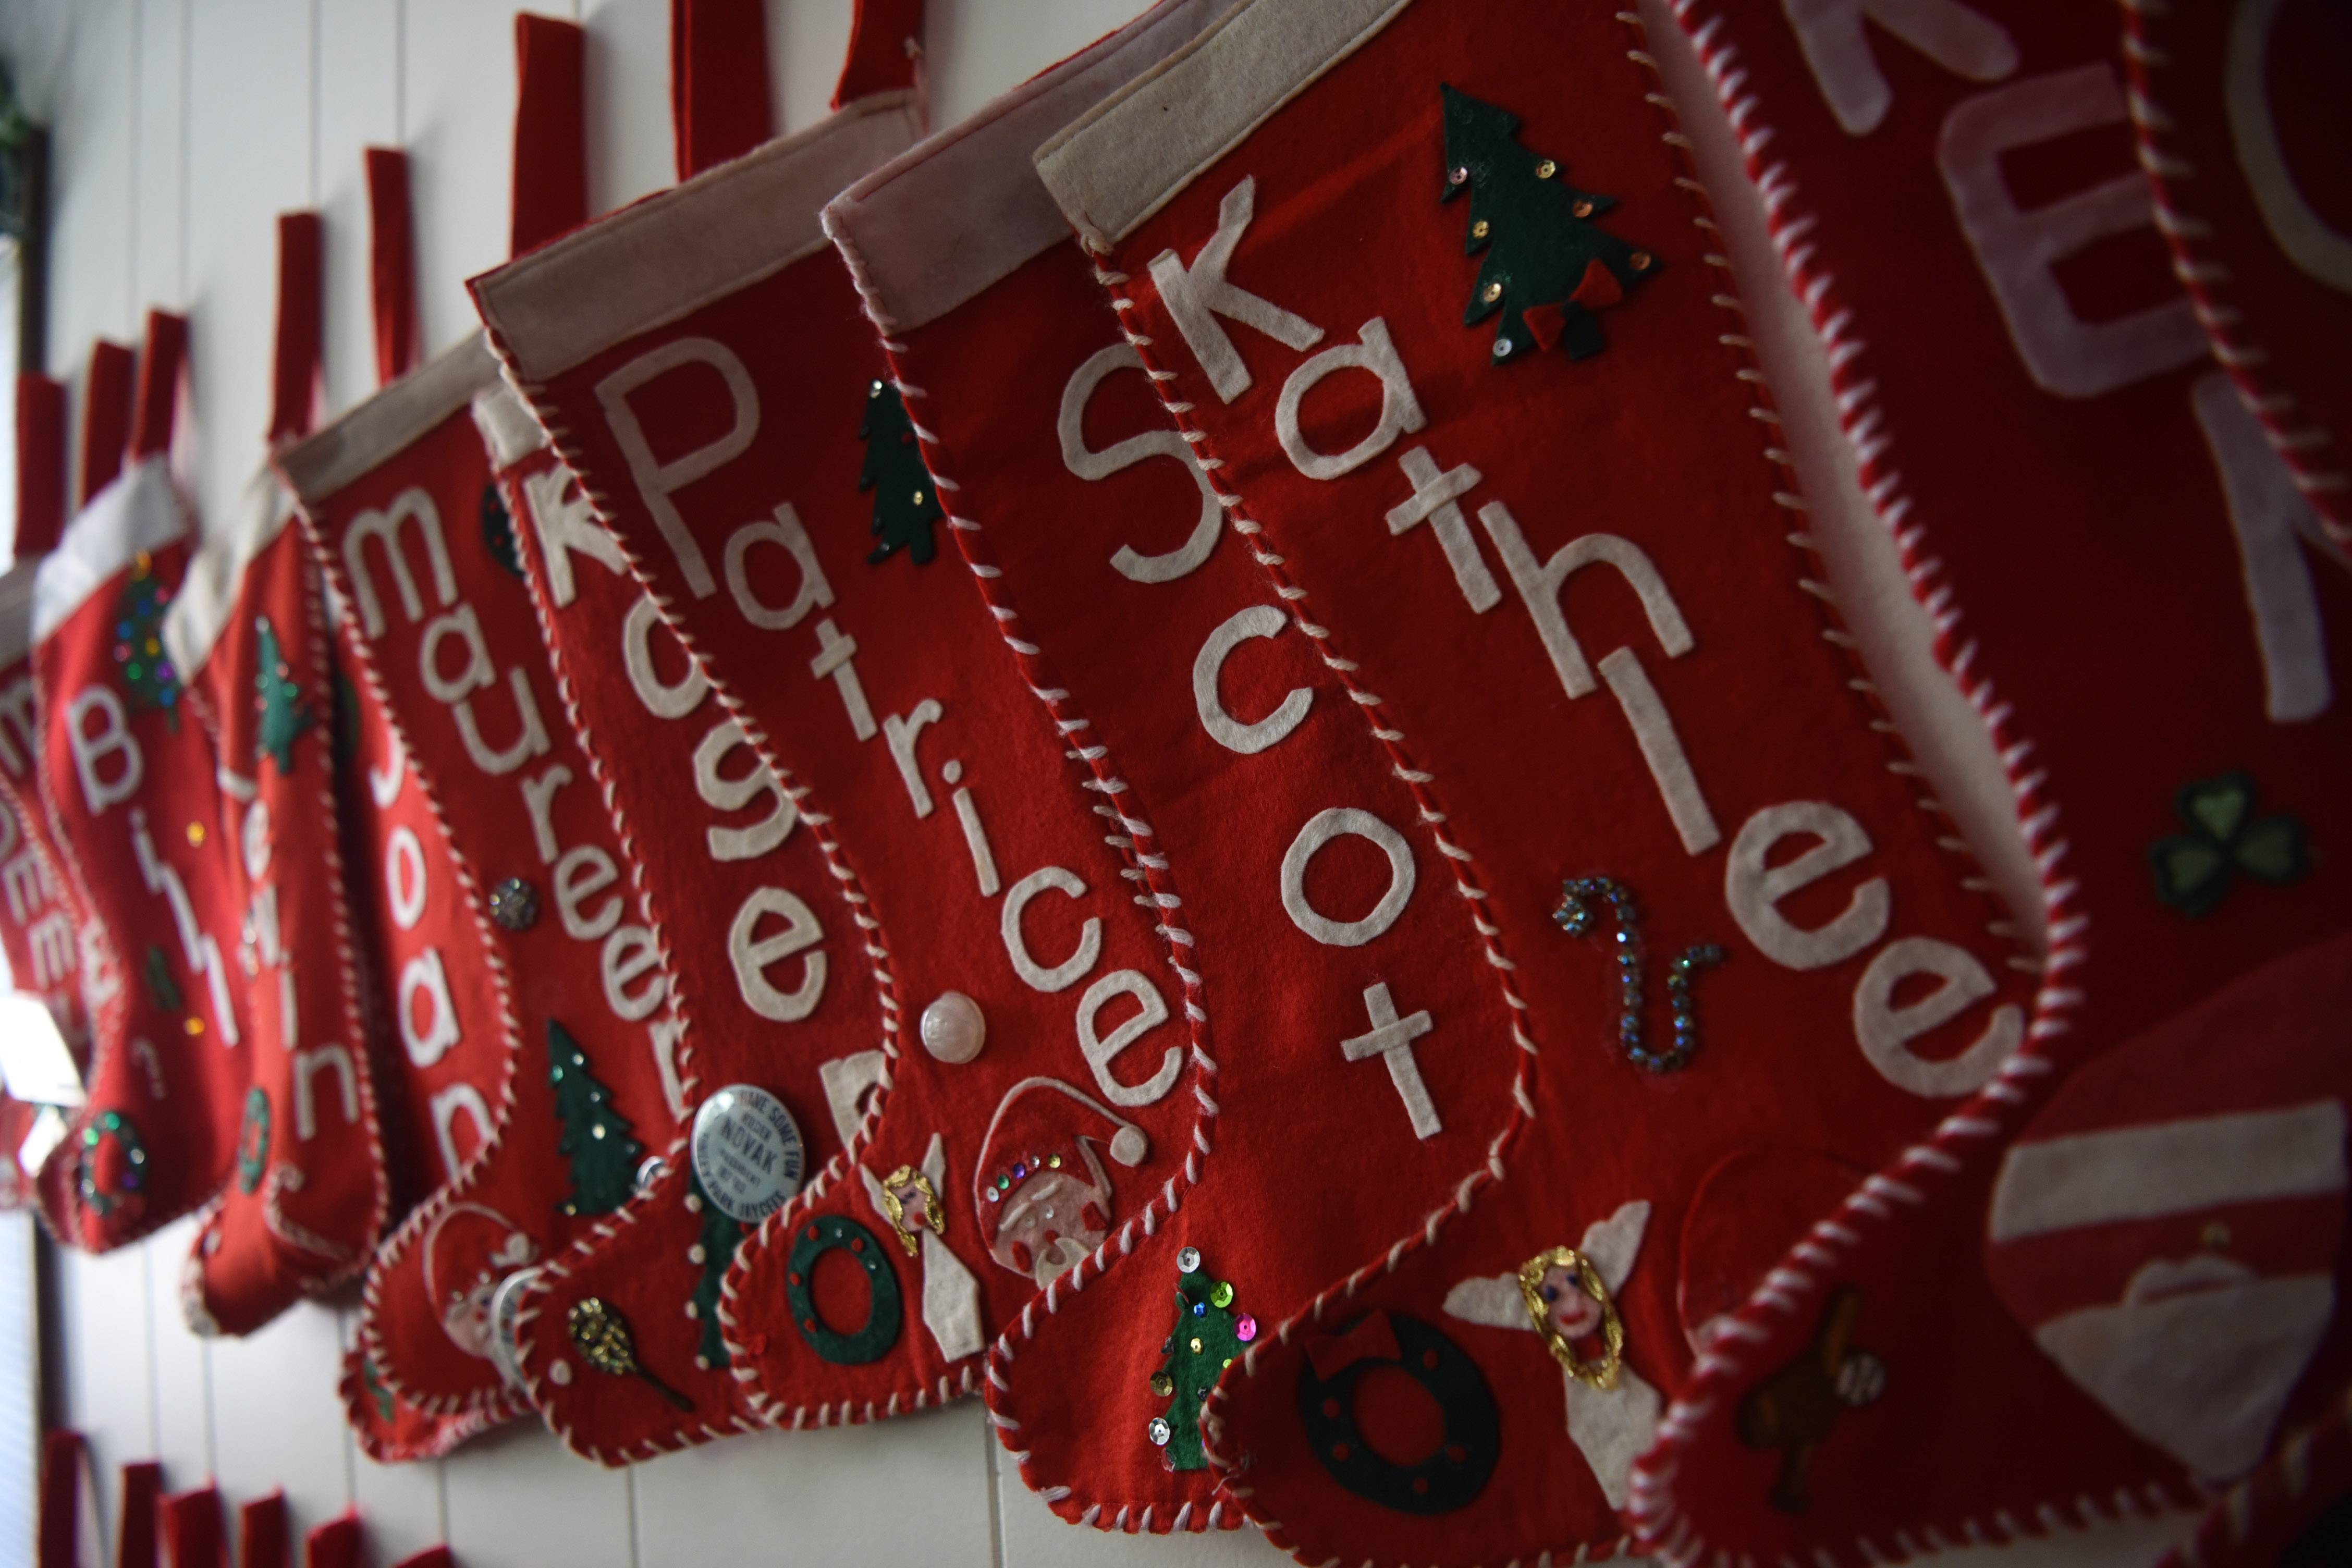 The 73 stockings hanging in Lorraine Kelly's house bear the names of her children, grandchildren and great-grandchildren.